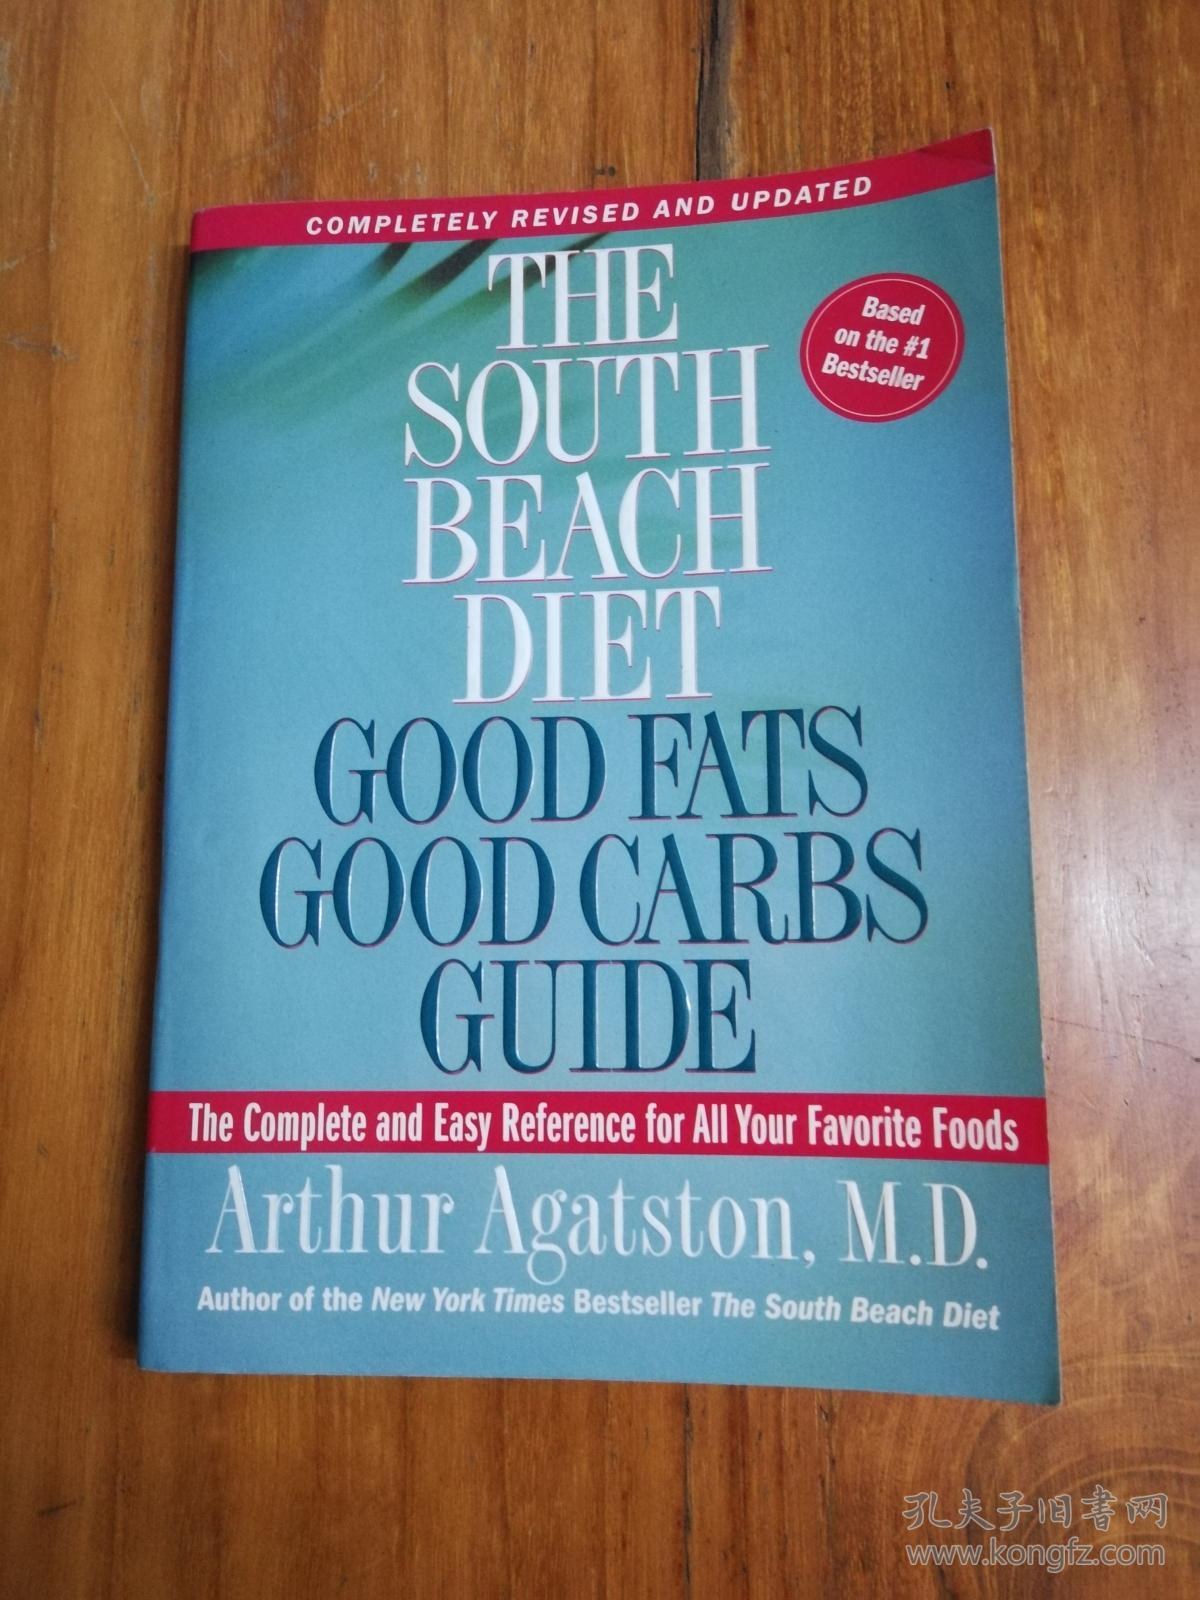 The South Beach Diet: Good Fats Good Carbs Guide - The Complete and Easy Reference for All Your Favorite Foods, Revised Edition南海滩饮食:好脂肪好碳水化合物指南 - 所有你最喜欢的食物